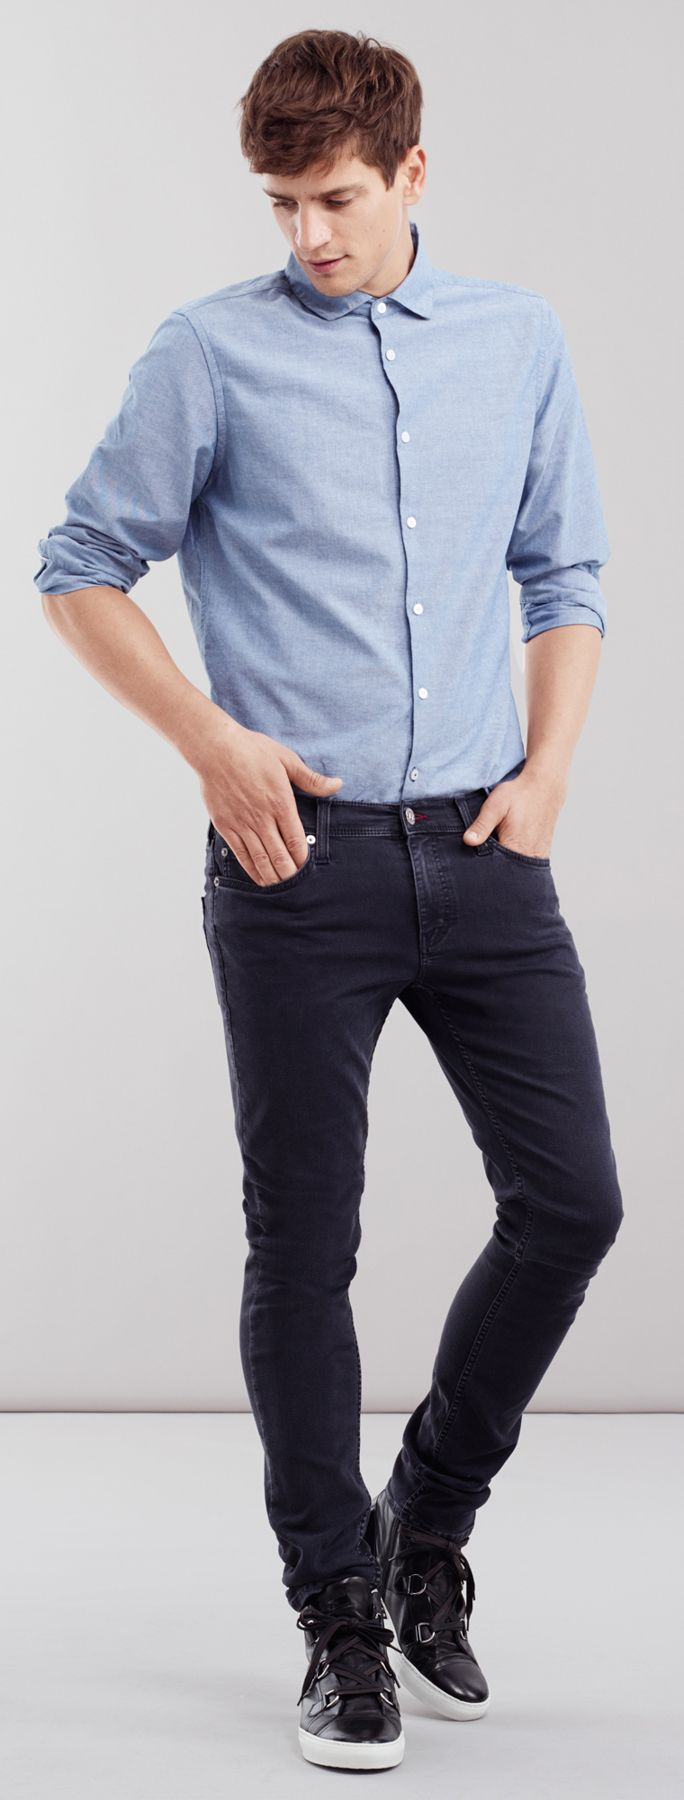 Nothing looks fresher on a man that some classic dark denim jeans and a simple, powder blue button-down. The way you style it can make it look as casual or as dressy as you need it to be.